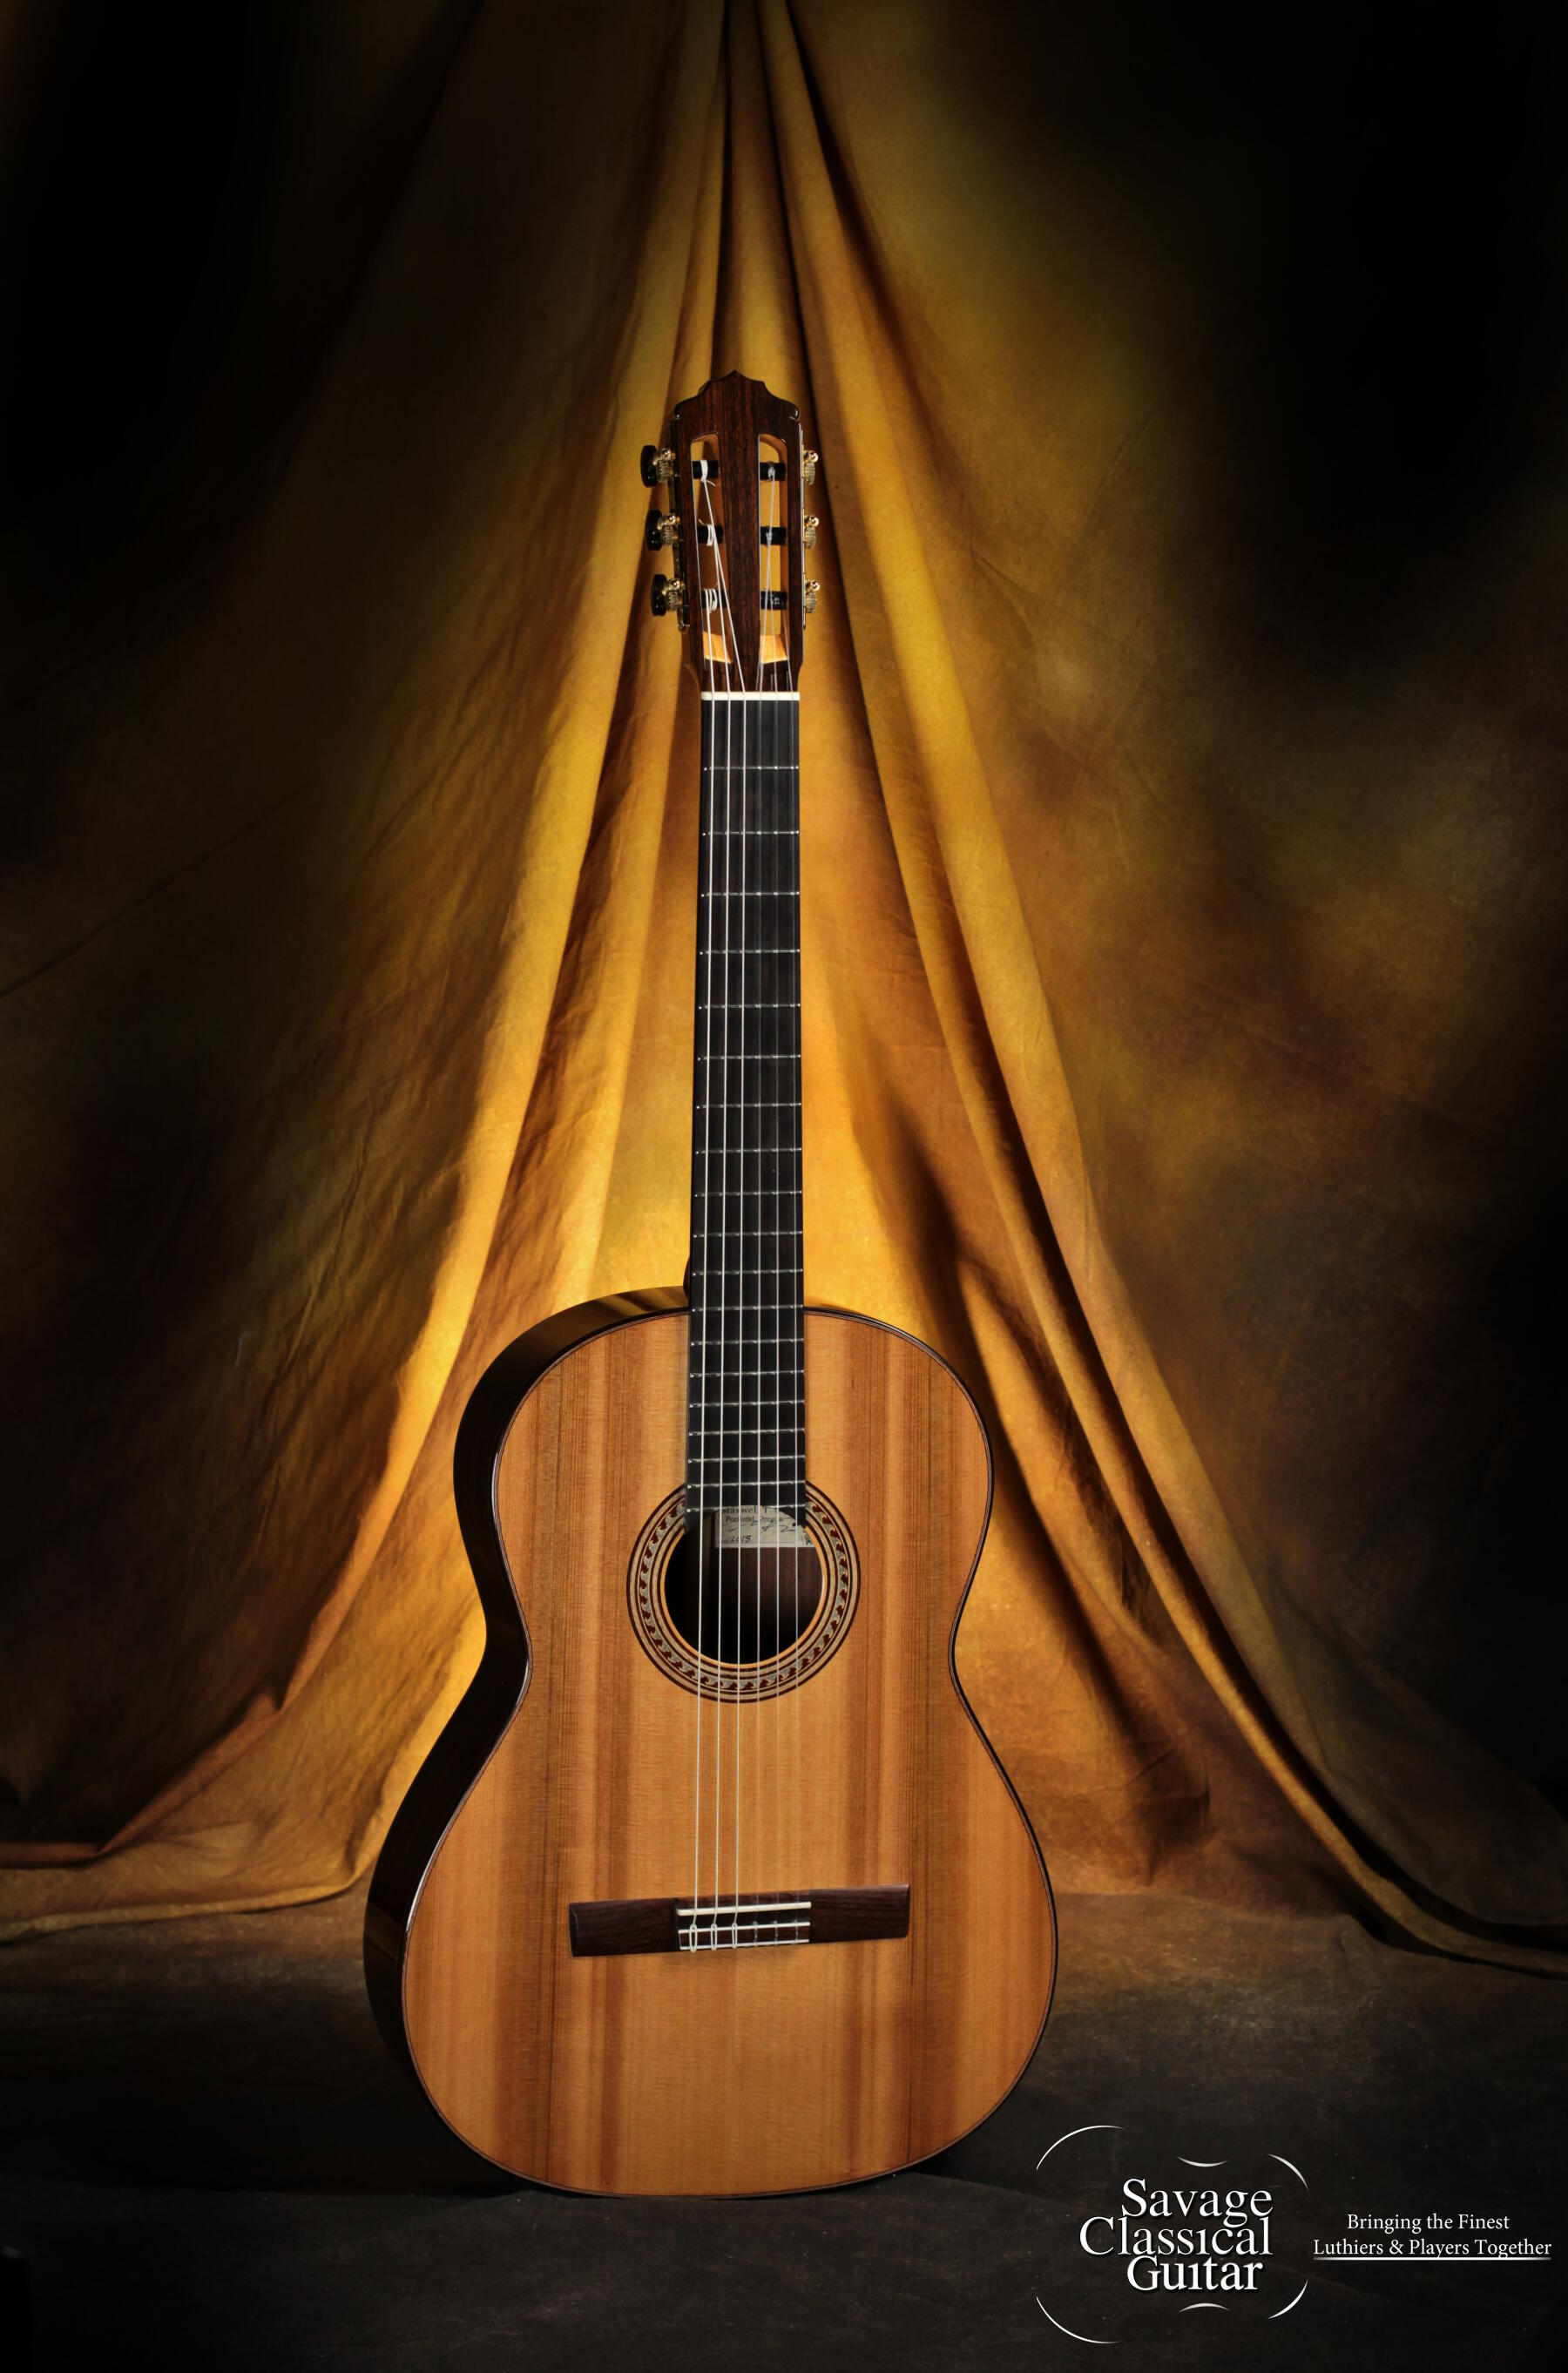 2015 Max Sipe Cedar Classical Guitar Review by Beat Pfluger